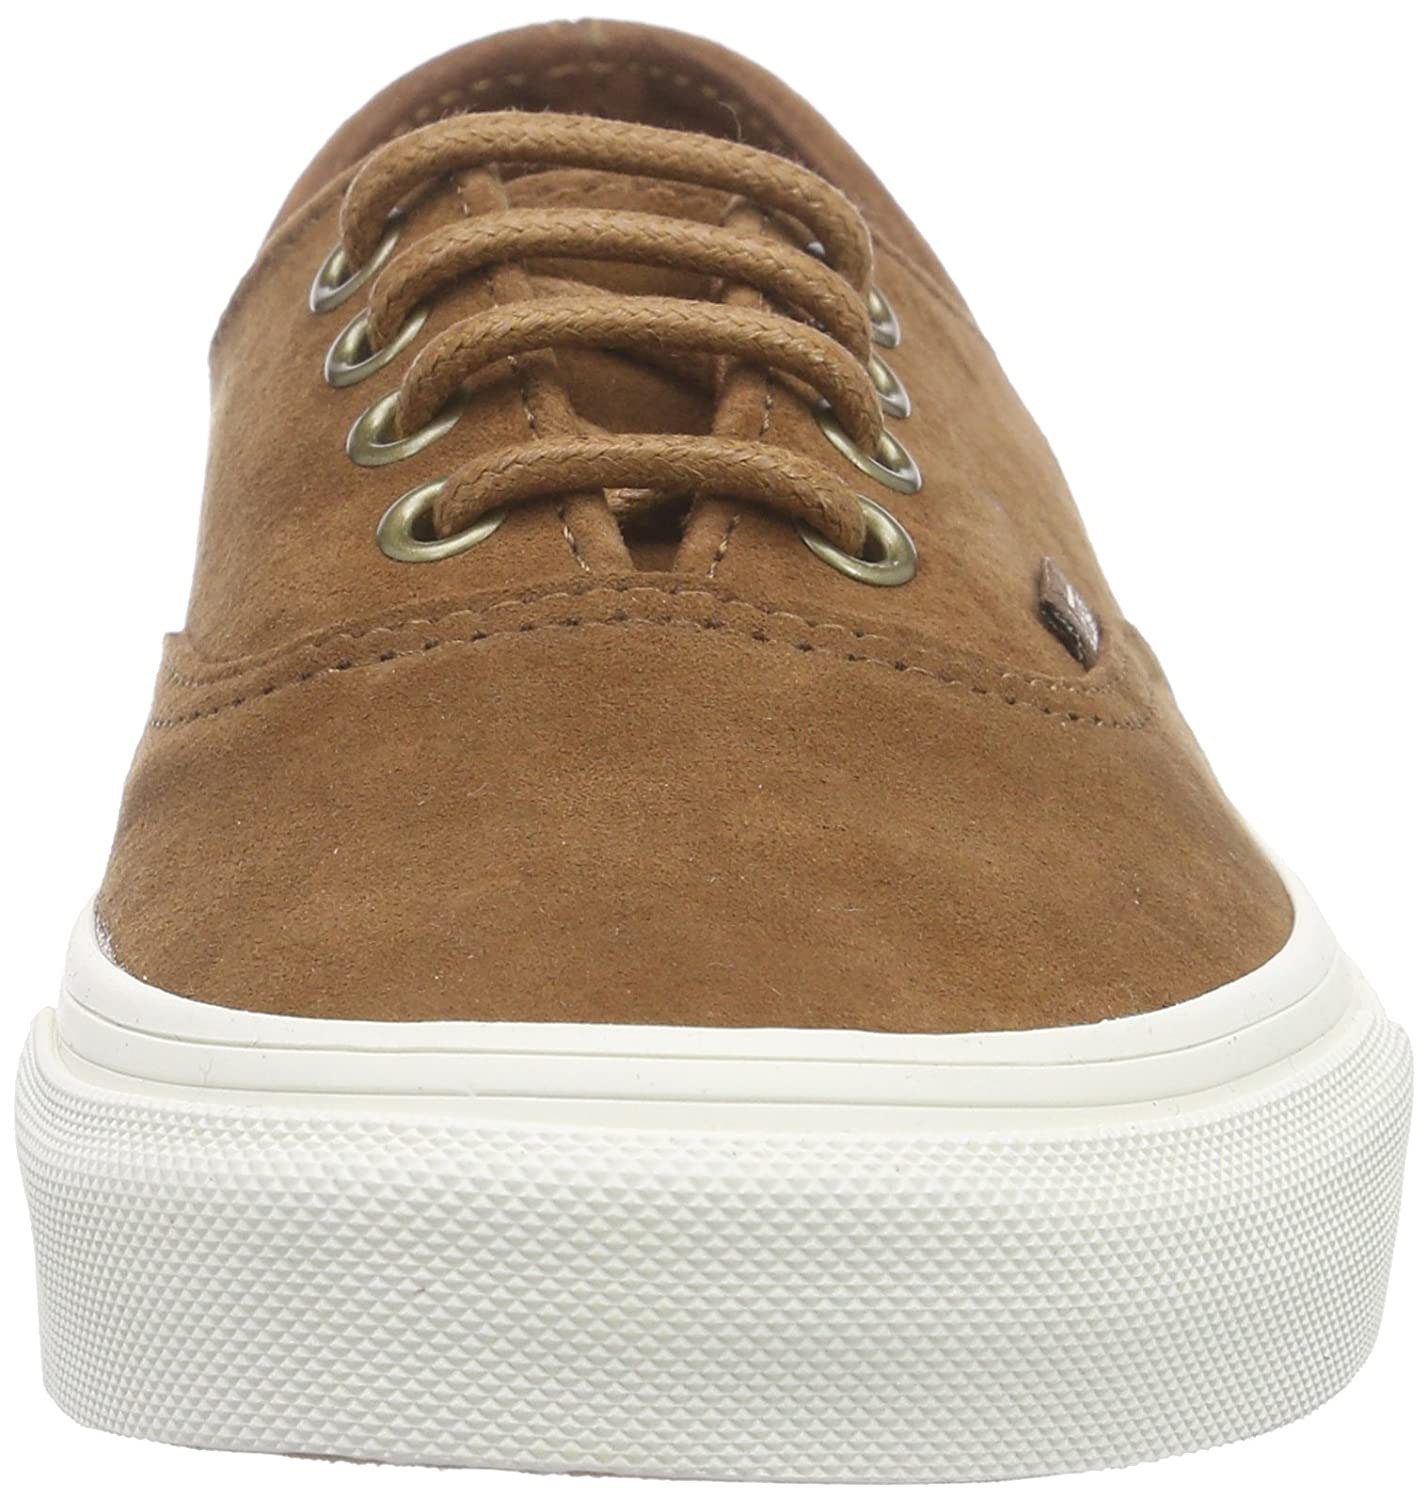 Vans Authentic Decon Scotchgard Monk s Robe Marrón 36.5  Amazon.ca  Shoes    Handbags 5ab2f091bf0